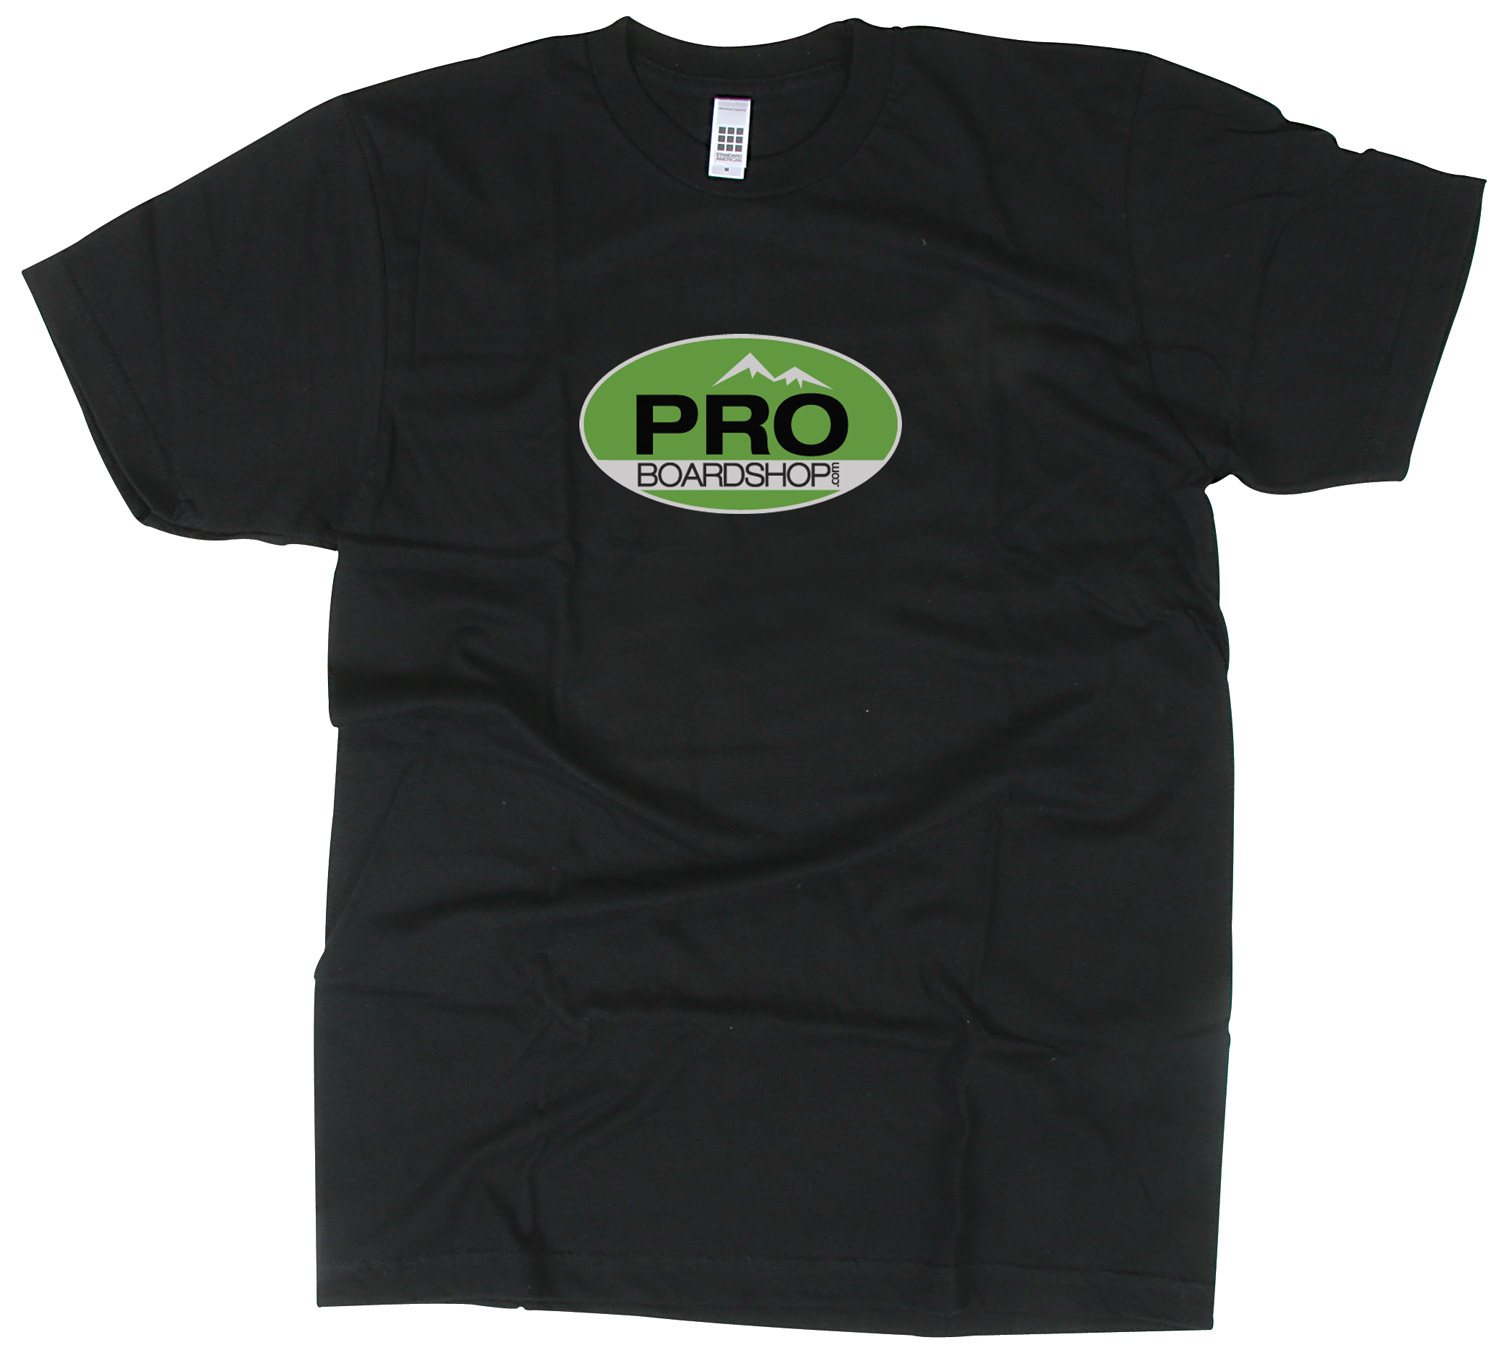 Show your support! Sport a Proboardshop Ovalteen T-Shirt. All Proboardshop T-Shirts live up to the quality you'd expect from a boardshop that's been serving boarders since 1982. - $6.95